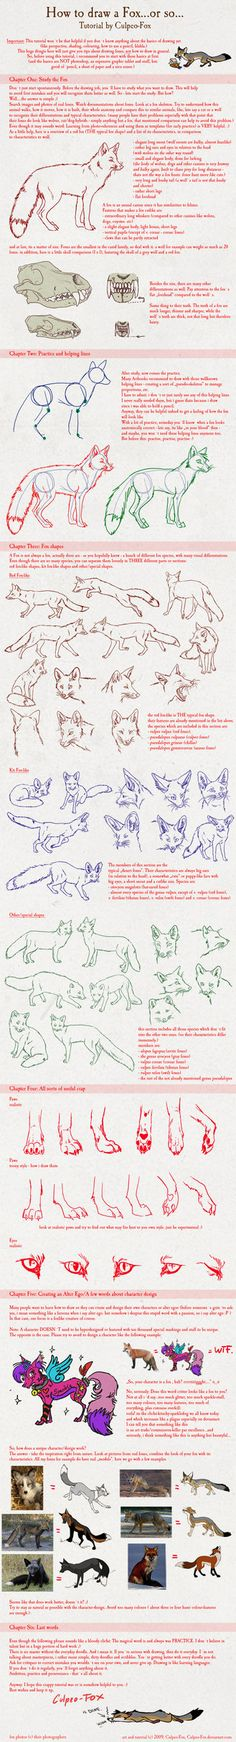 Fox drawing tutorial by Culpeo-Fox via deviantart ✤ || CHARACTER DESIGN REFERENCES | Find more at https://www.facebook.com/CharacterDesignReferences & http://www.pinterest.com/characterdesigh if you're looking for: anatomy, animals